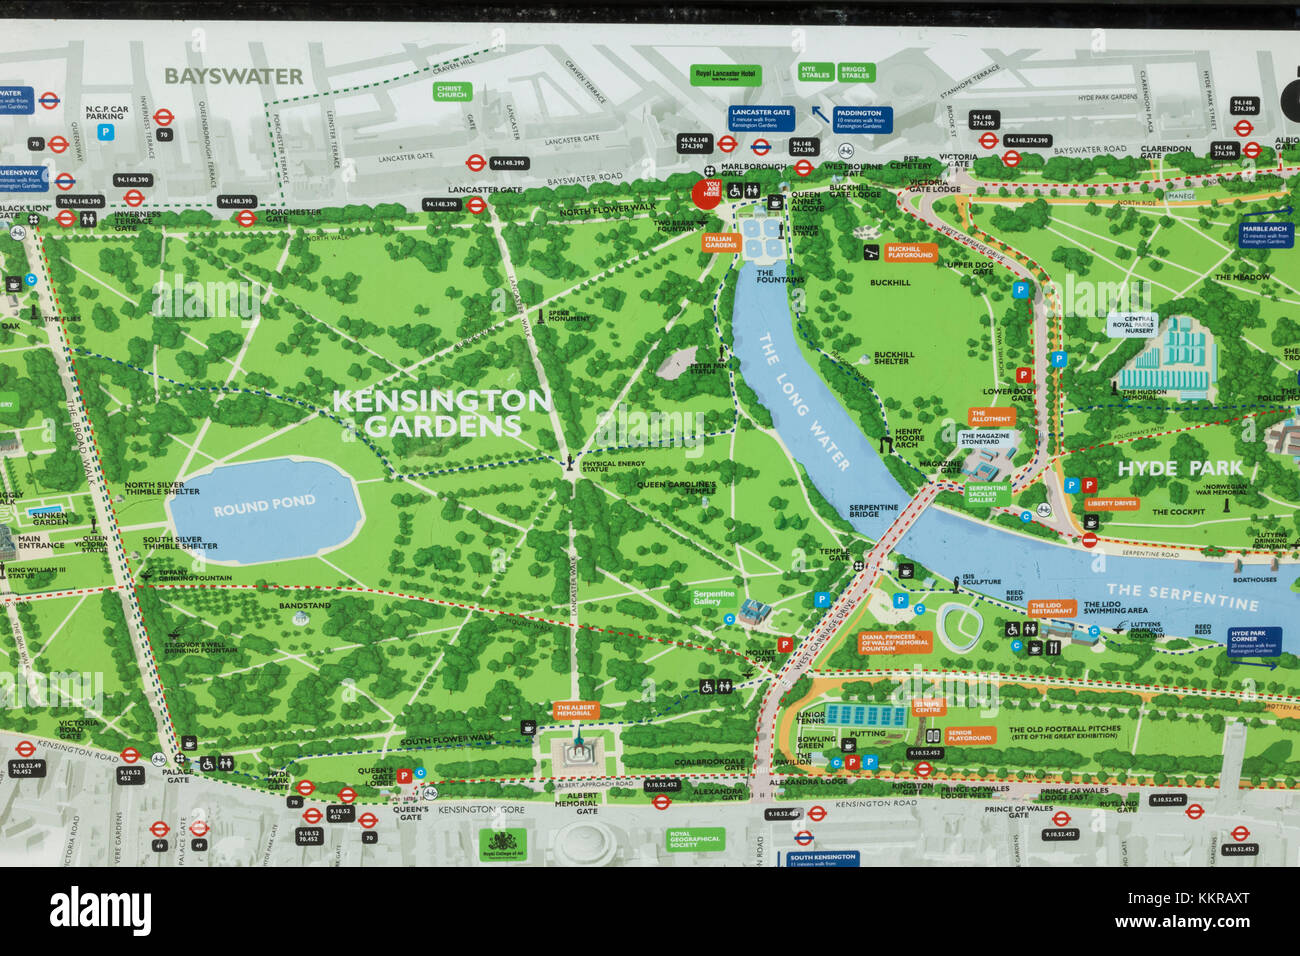 Kensington Gardens Map England, London, Kensington, Kensington Gardens, Map Stock Photo